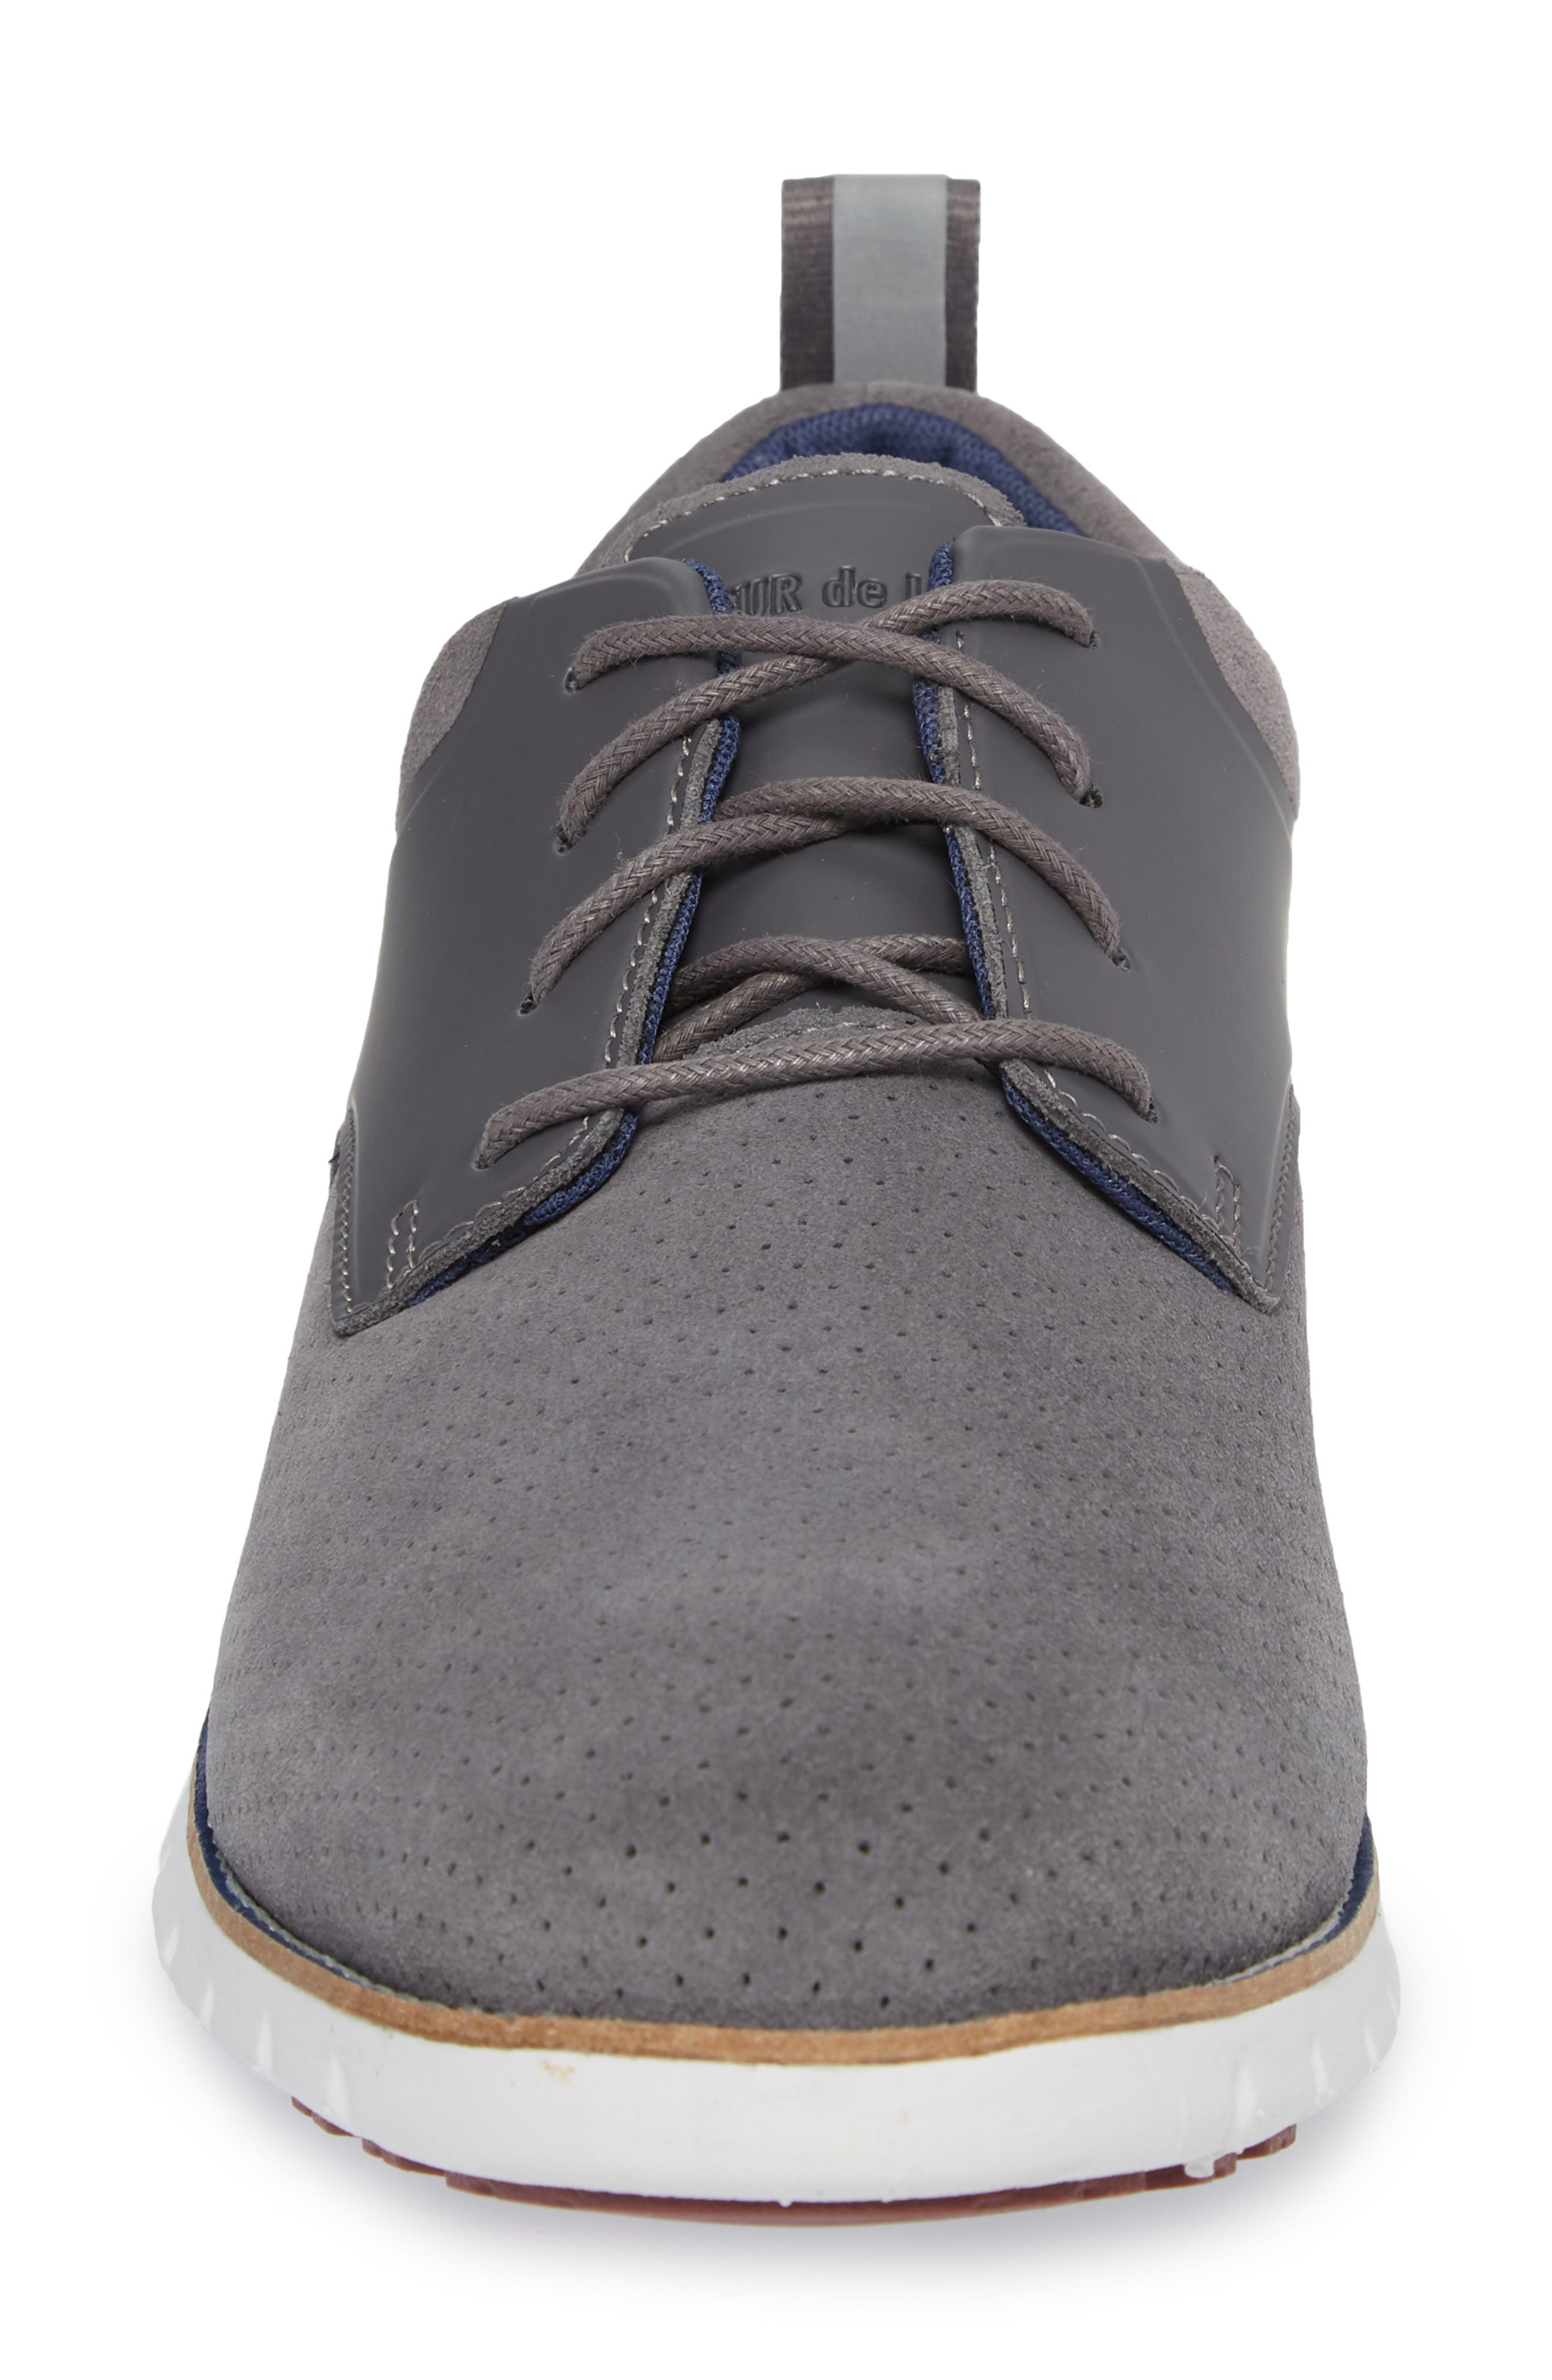 Ridley Perforated Low Top Sneaker,                             Alternate thumbnail 4, color,                             020